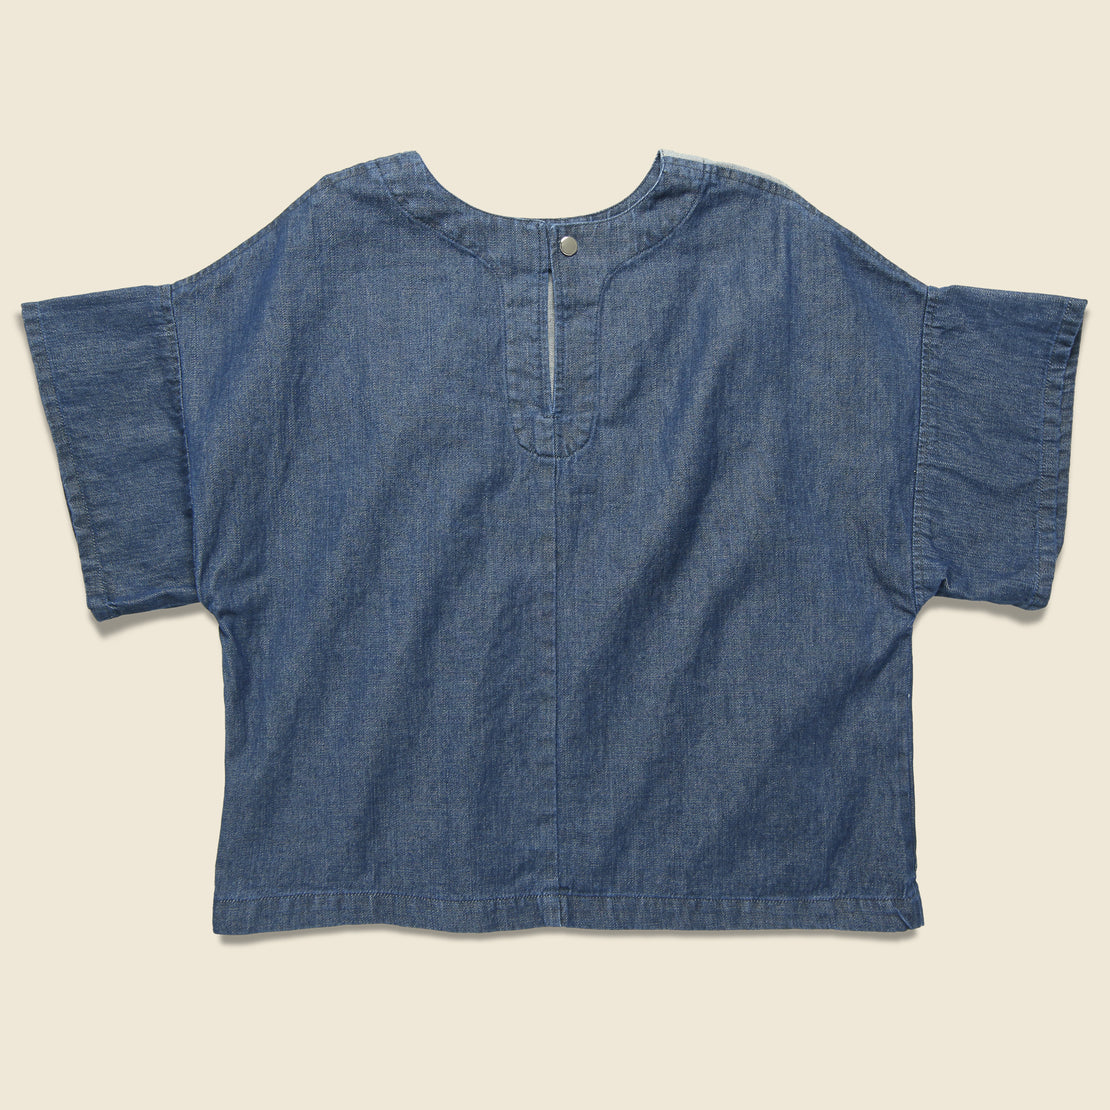 Web Denim Shirt - Blue Two-Tone